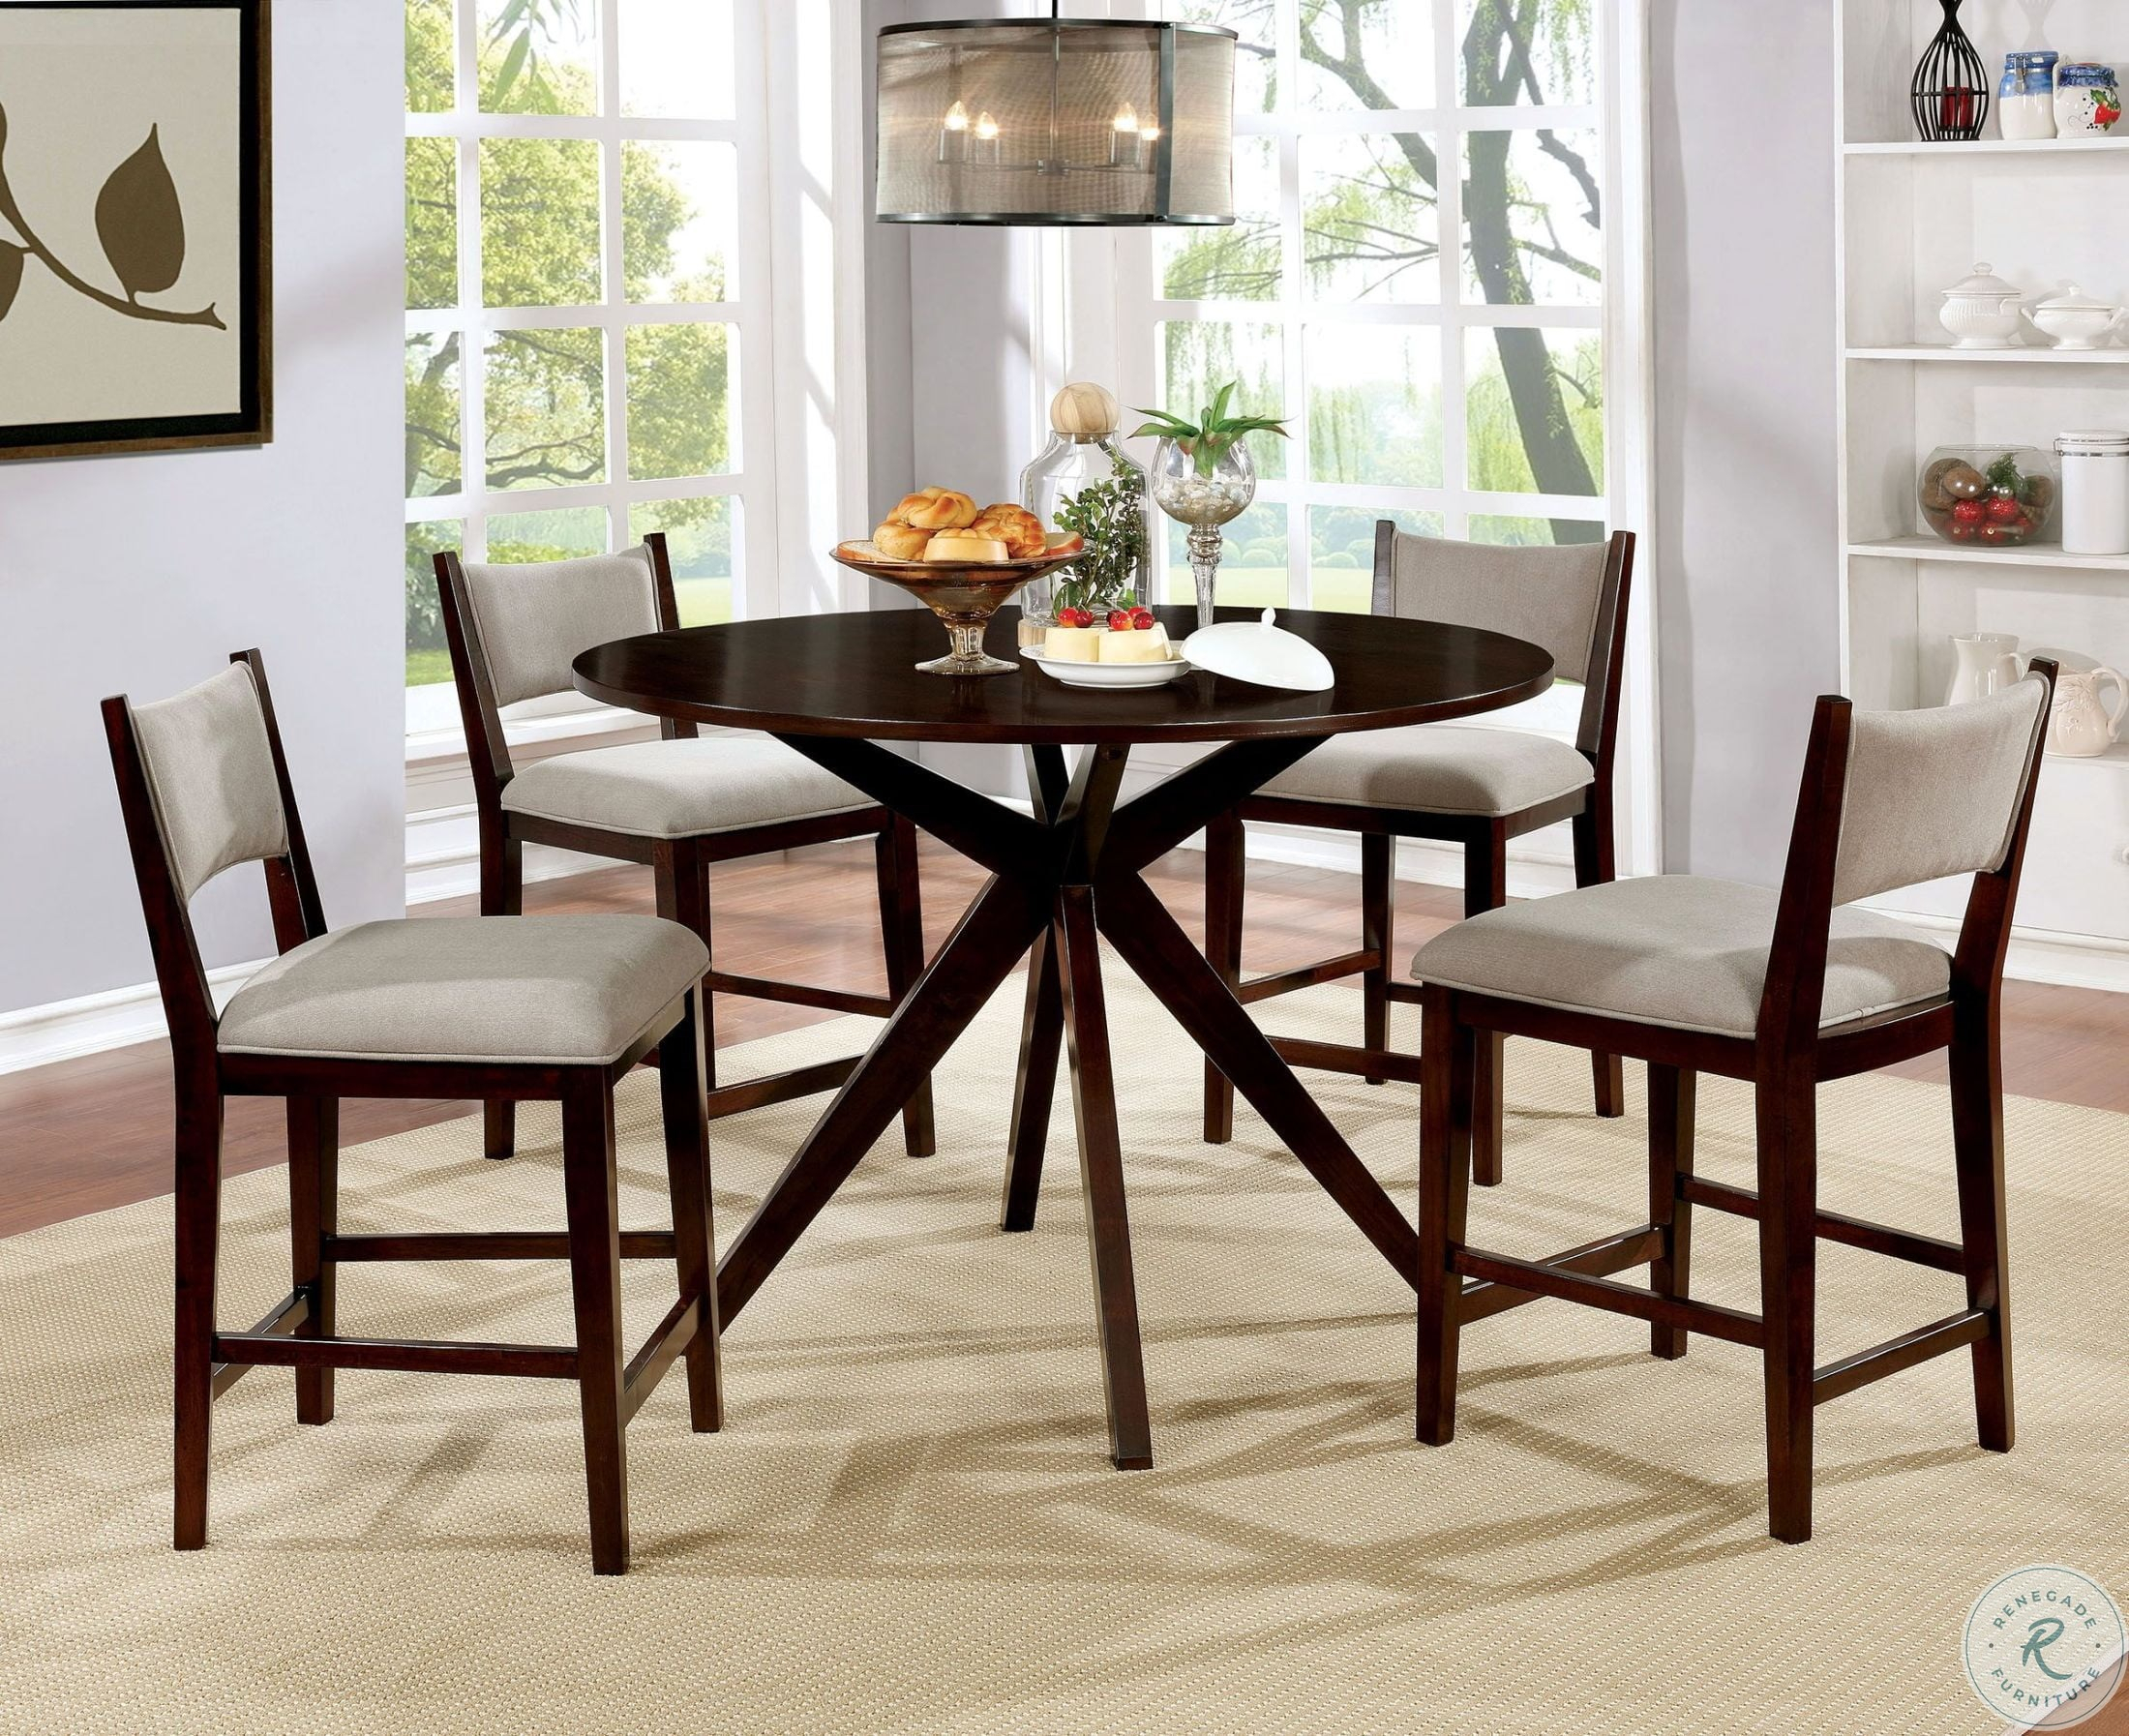 Kaidence Brown Cherry Round Counter Height Dining Room Set Throughout Most Recent Anette 3 Piece Counter Height Dining Sets (View 18 of 20)